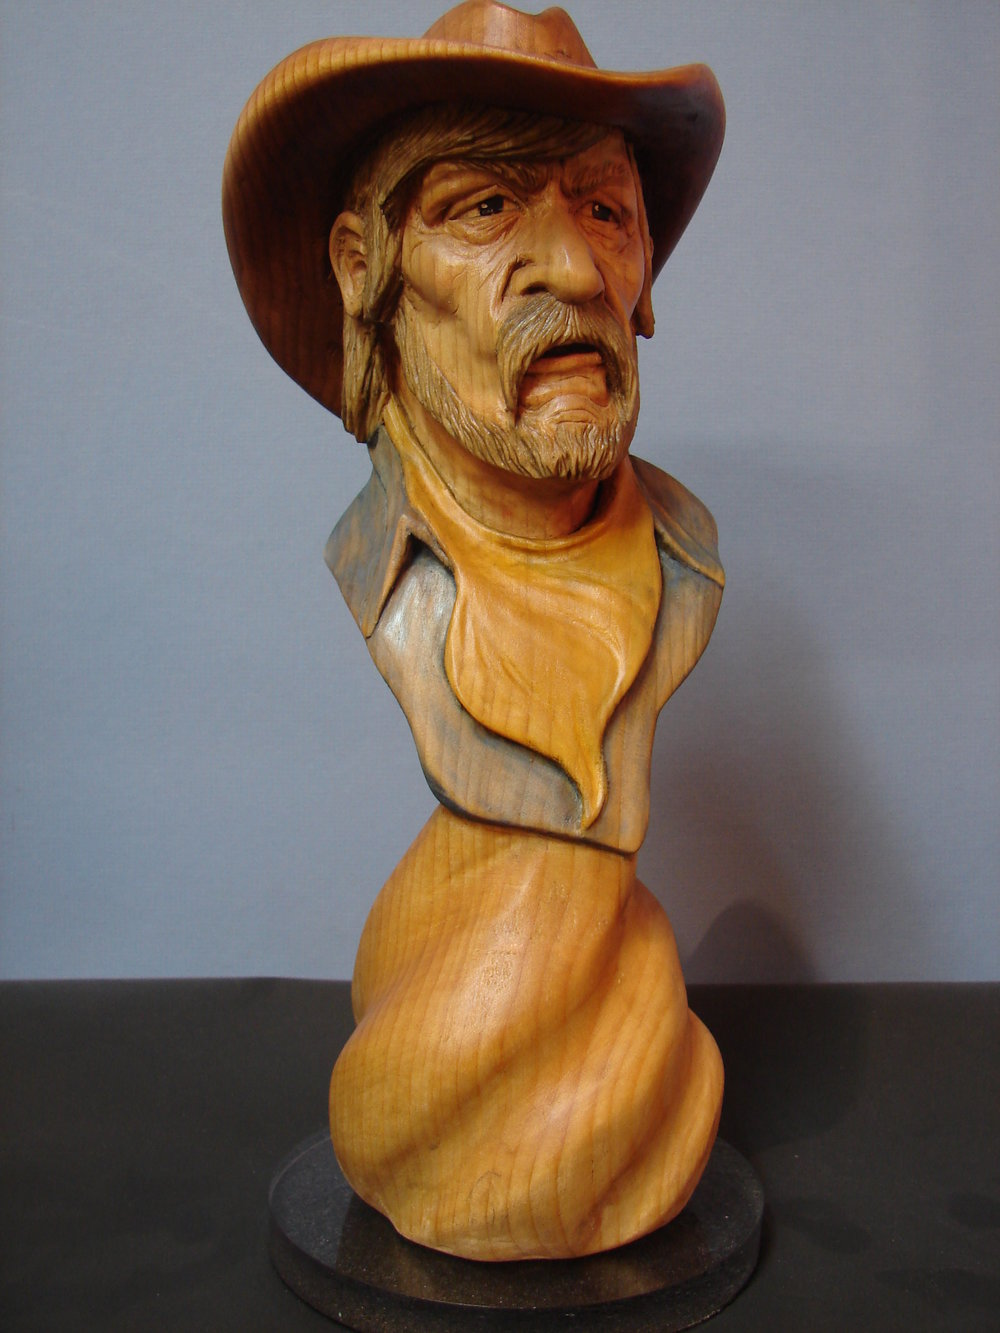 Cowboy bust (basswood)$40.00 each. Measures 12-inches x 4-inches x 4=inches. -